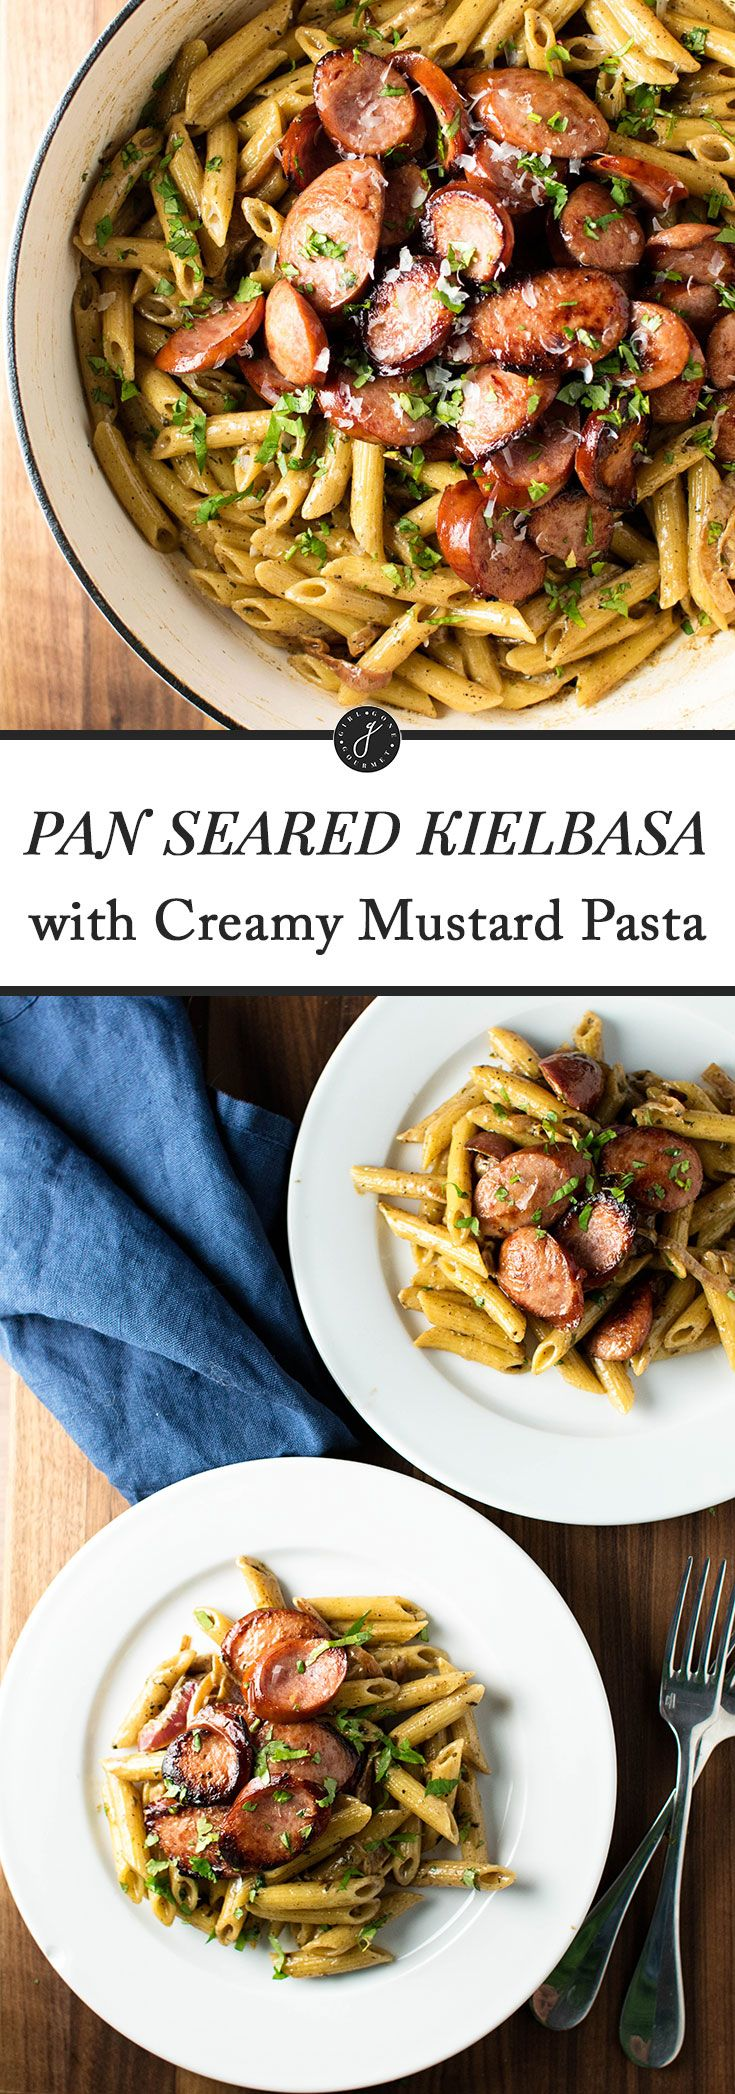 Pan seared kielbasa with a creamy mustard pasta made with white wine, butter, cream, and Parmesan cheese | girlgonegourmet.com via @april7116